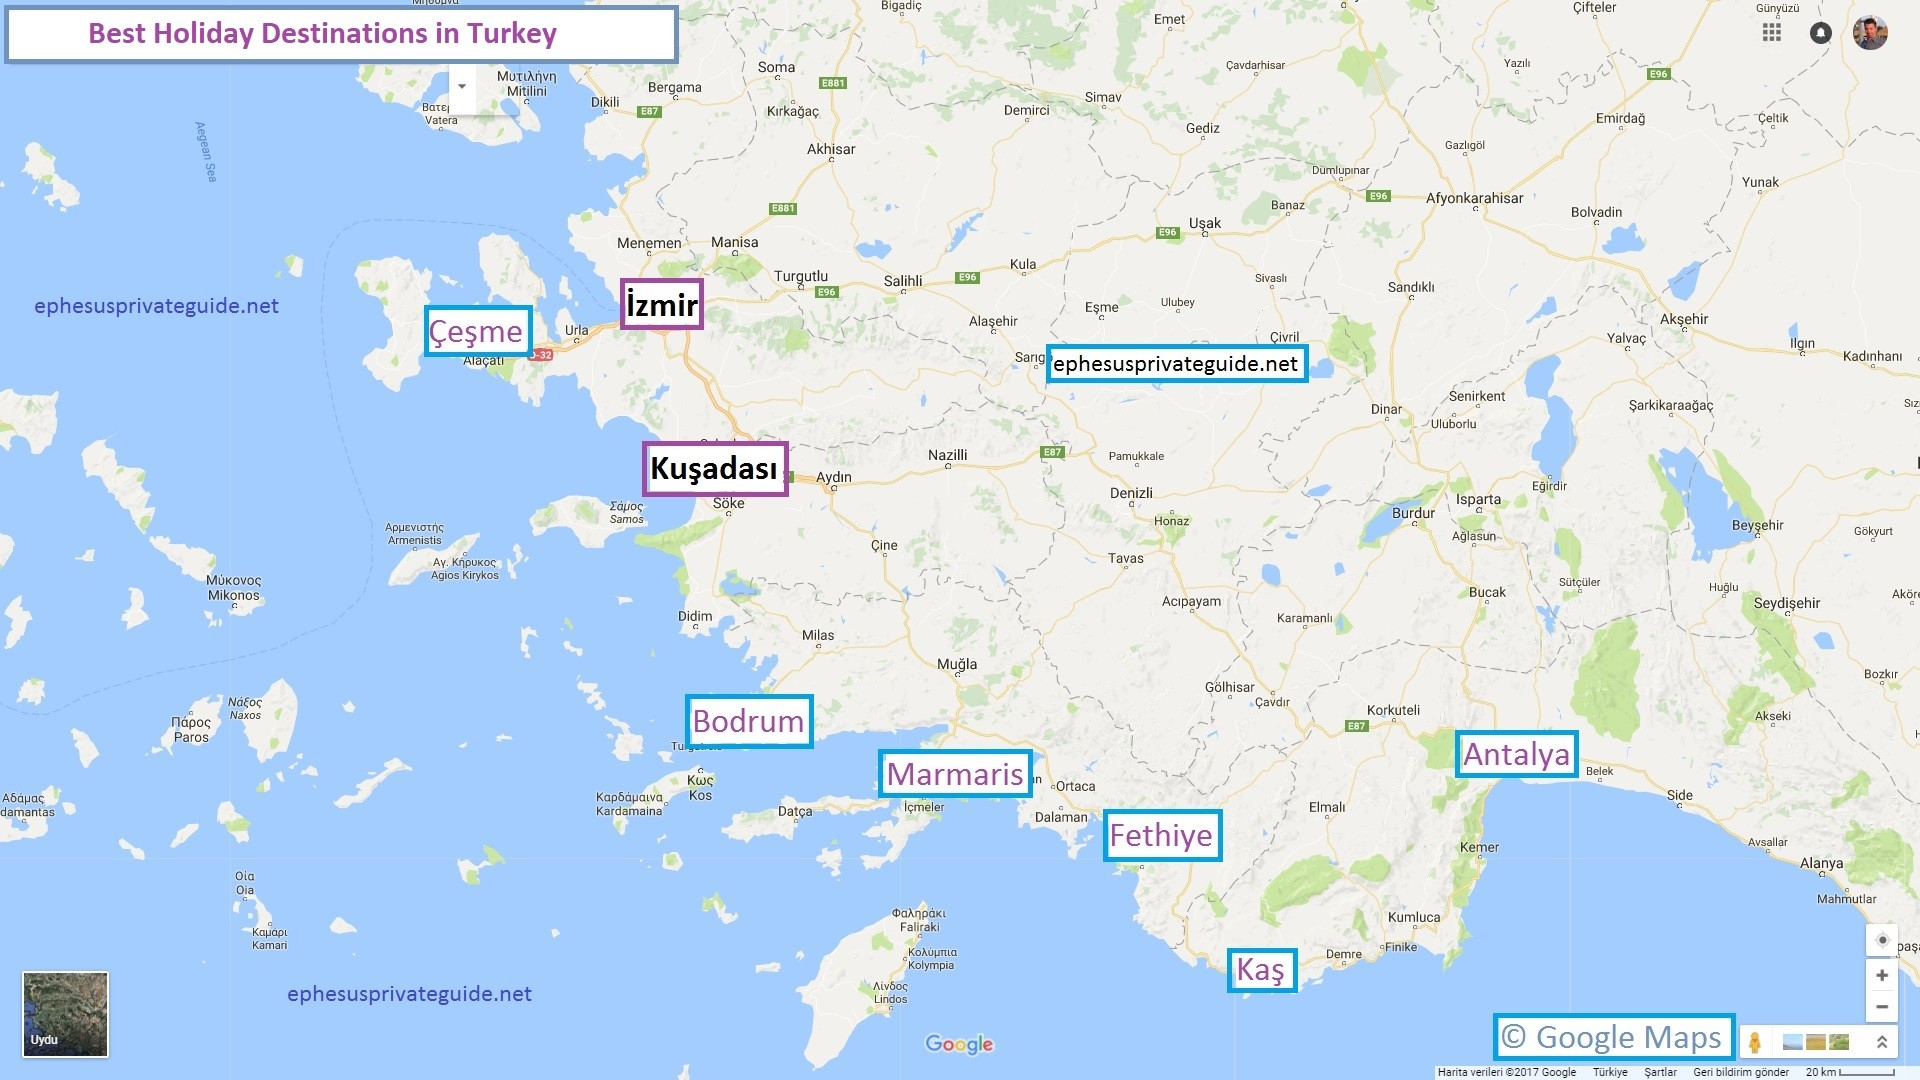 Map of Best Holiday Destinations in Turkey